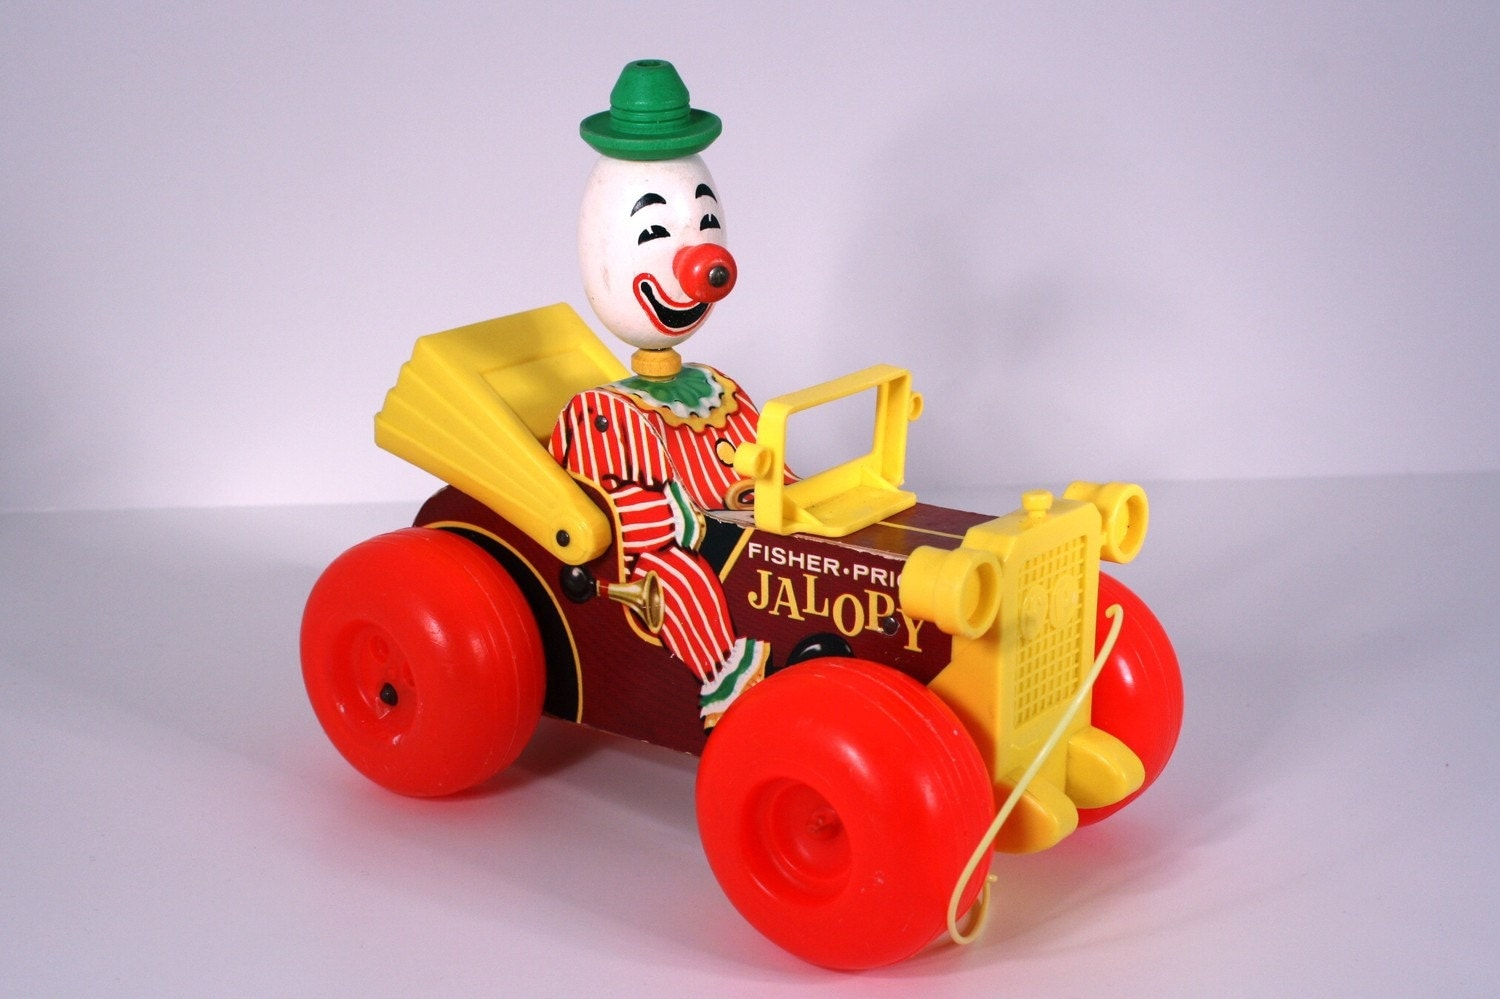 Vintage fisher price 1965 jalopy clown pull toy for Clown fish price